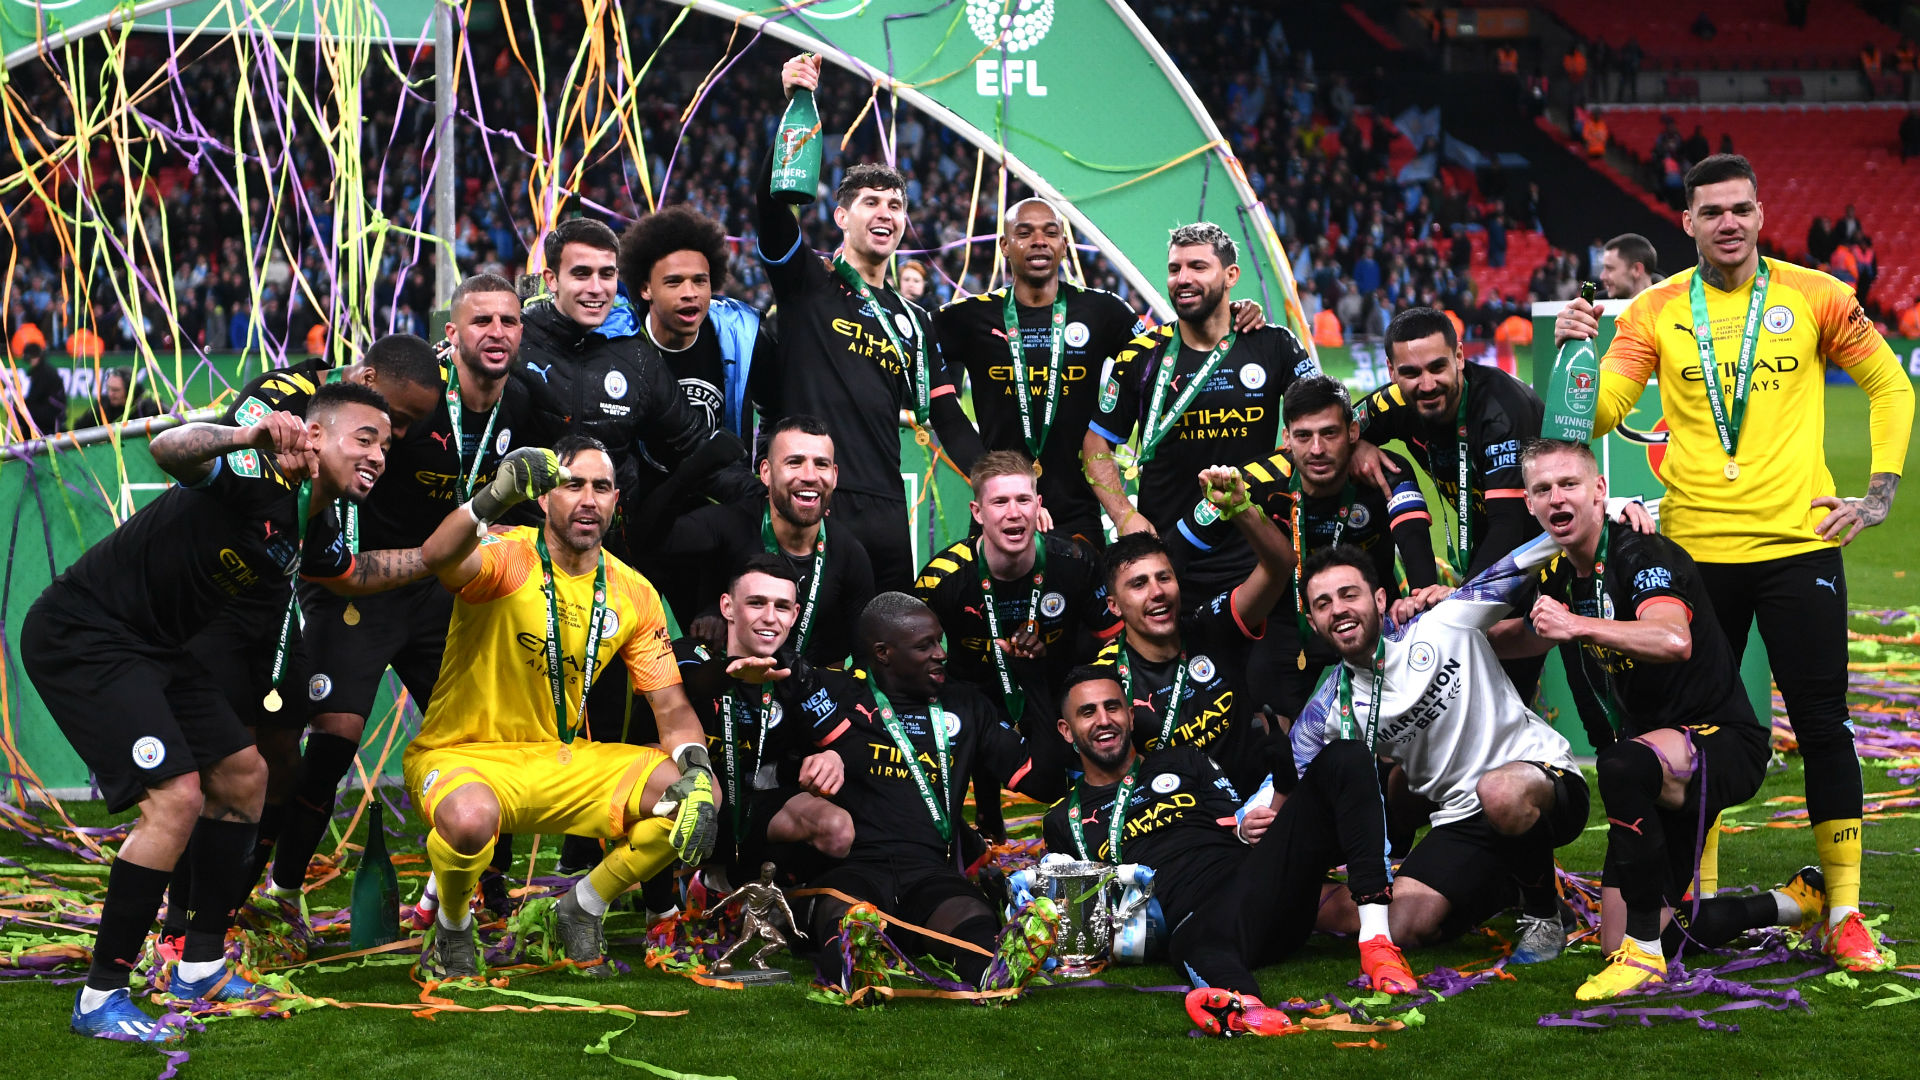 UEFA president Ceferin calls on England to ditch EFL Cup